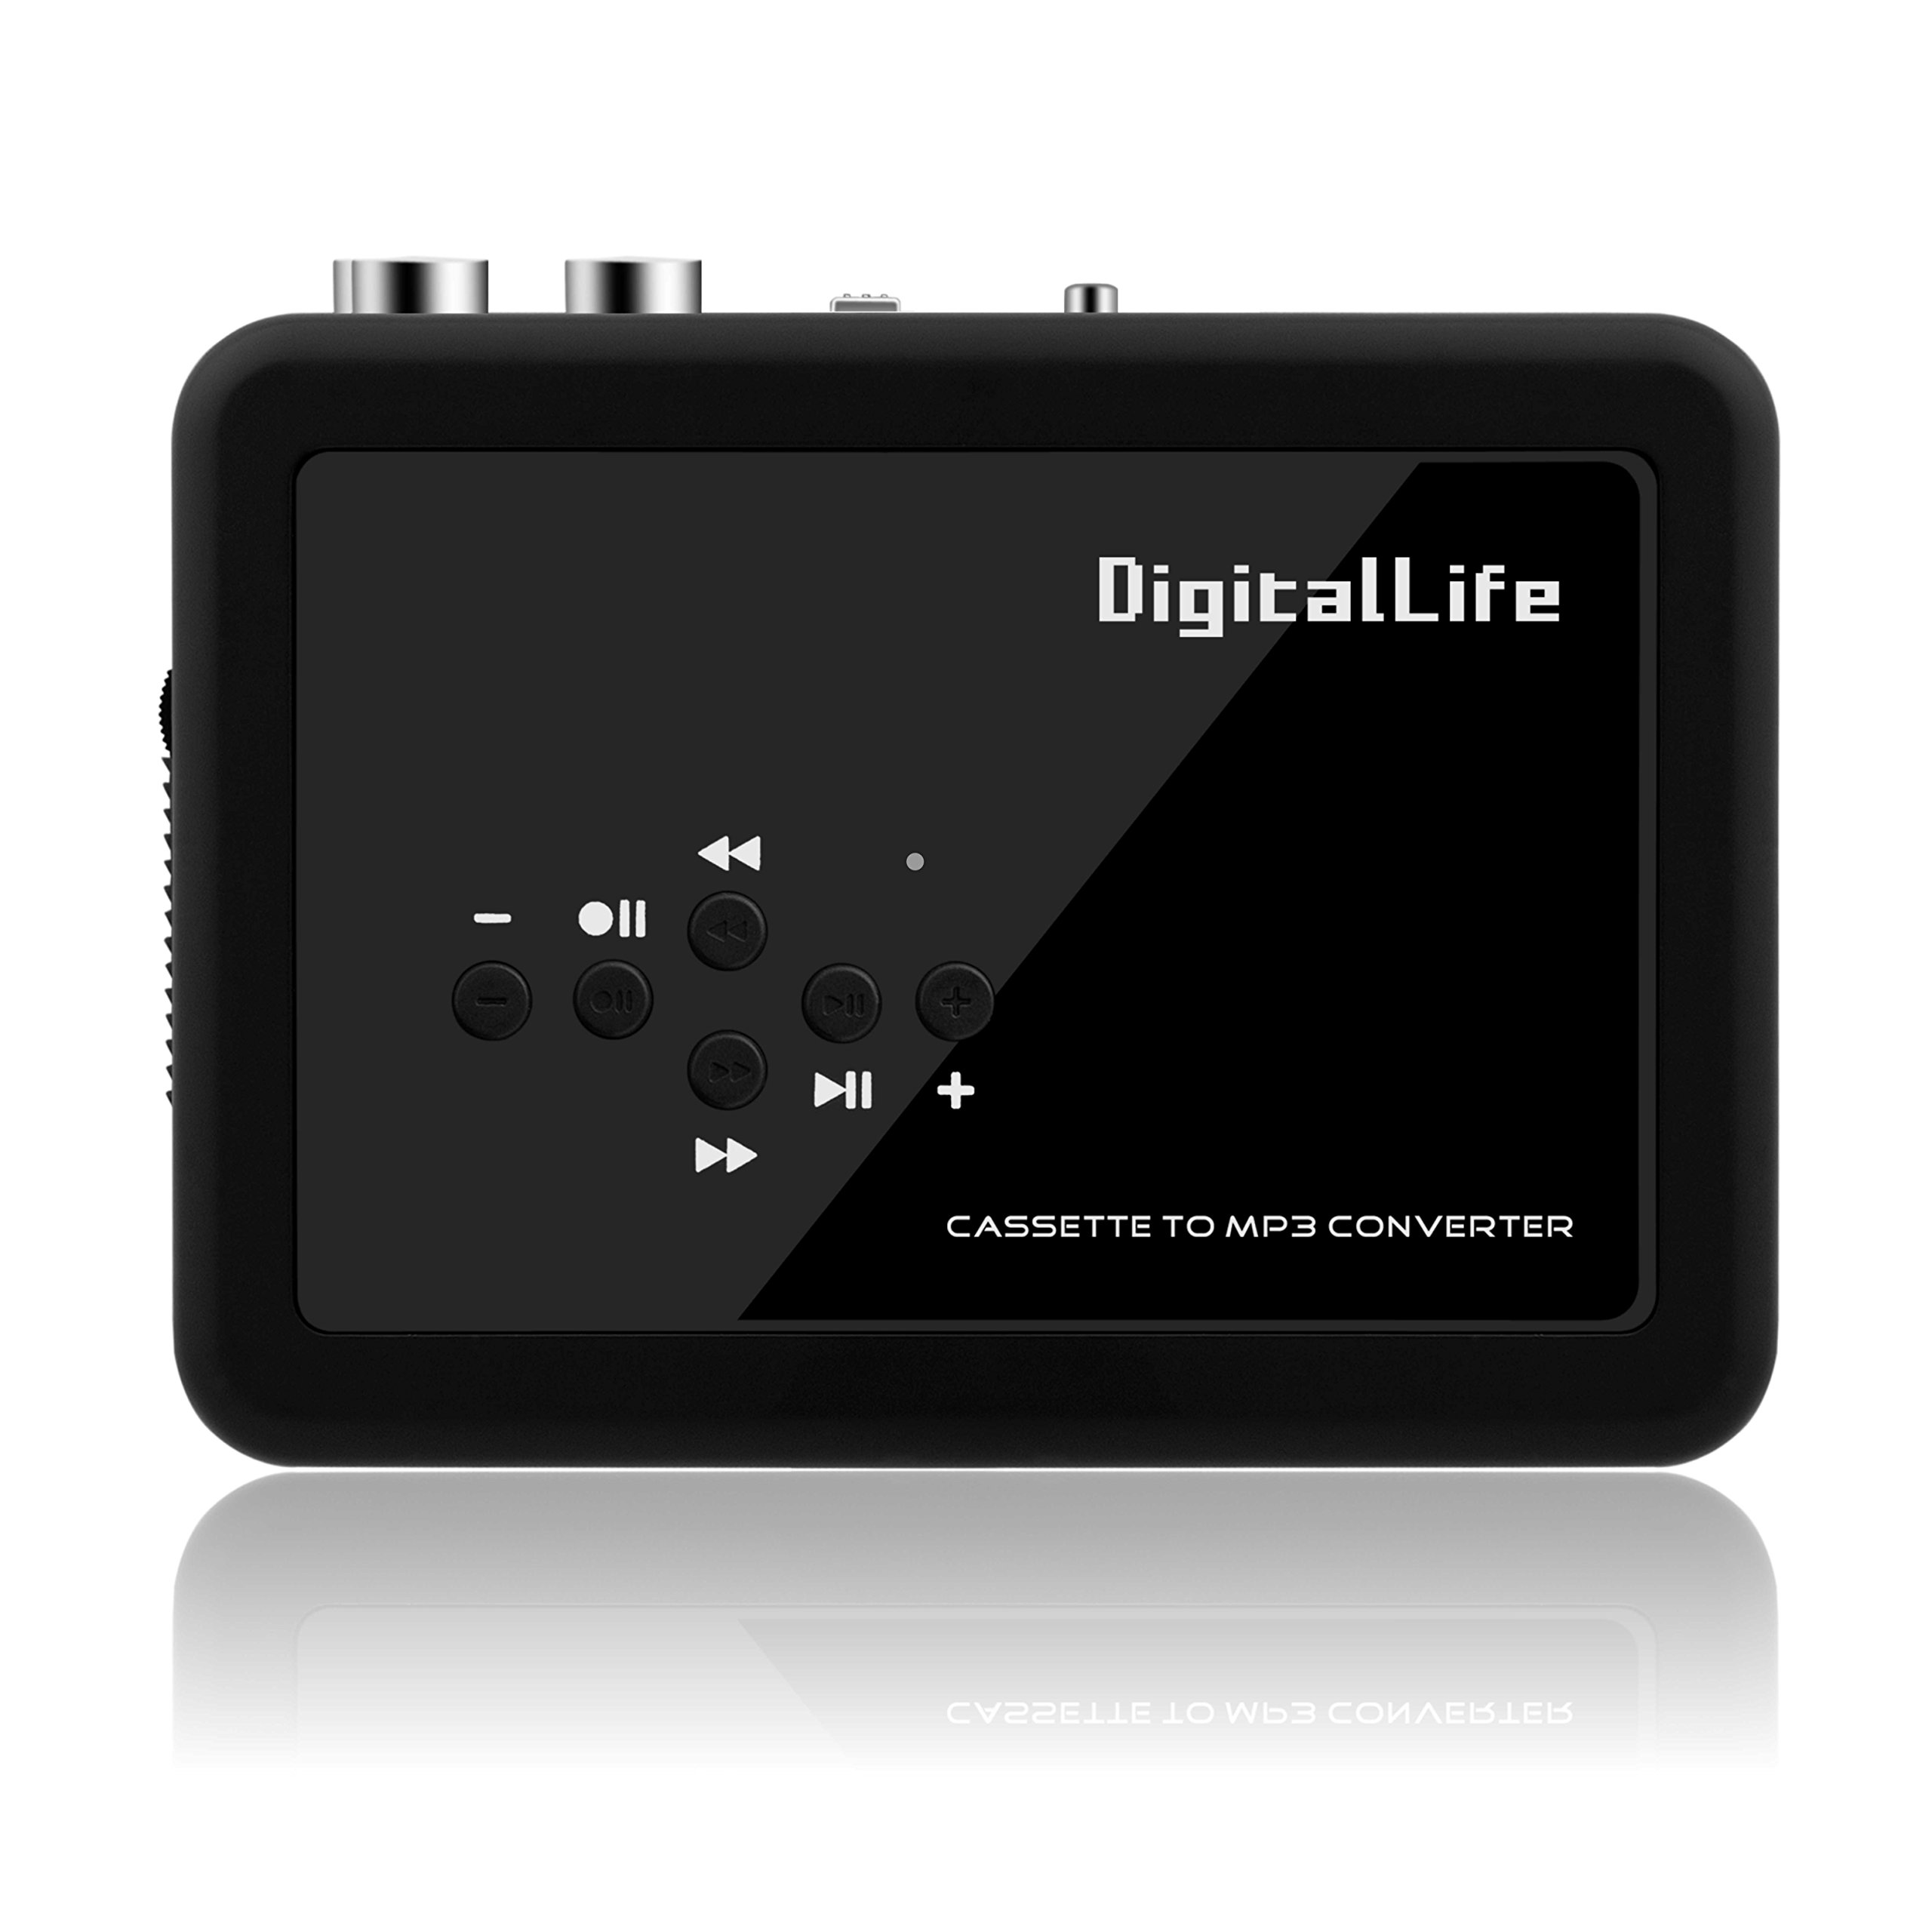 DigitalLife Stand-Alone Dual Functional Stereo Cassette to MP3 Converter to Pen Drive Disk/Music Player (PC Independent,USB Flash Disk,WalkMan)